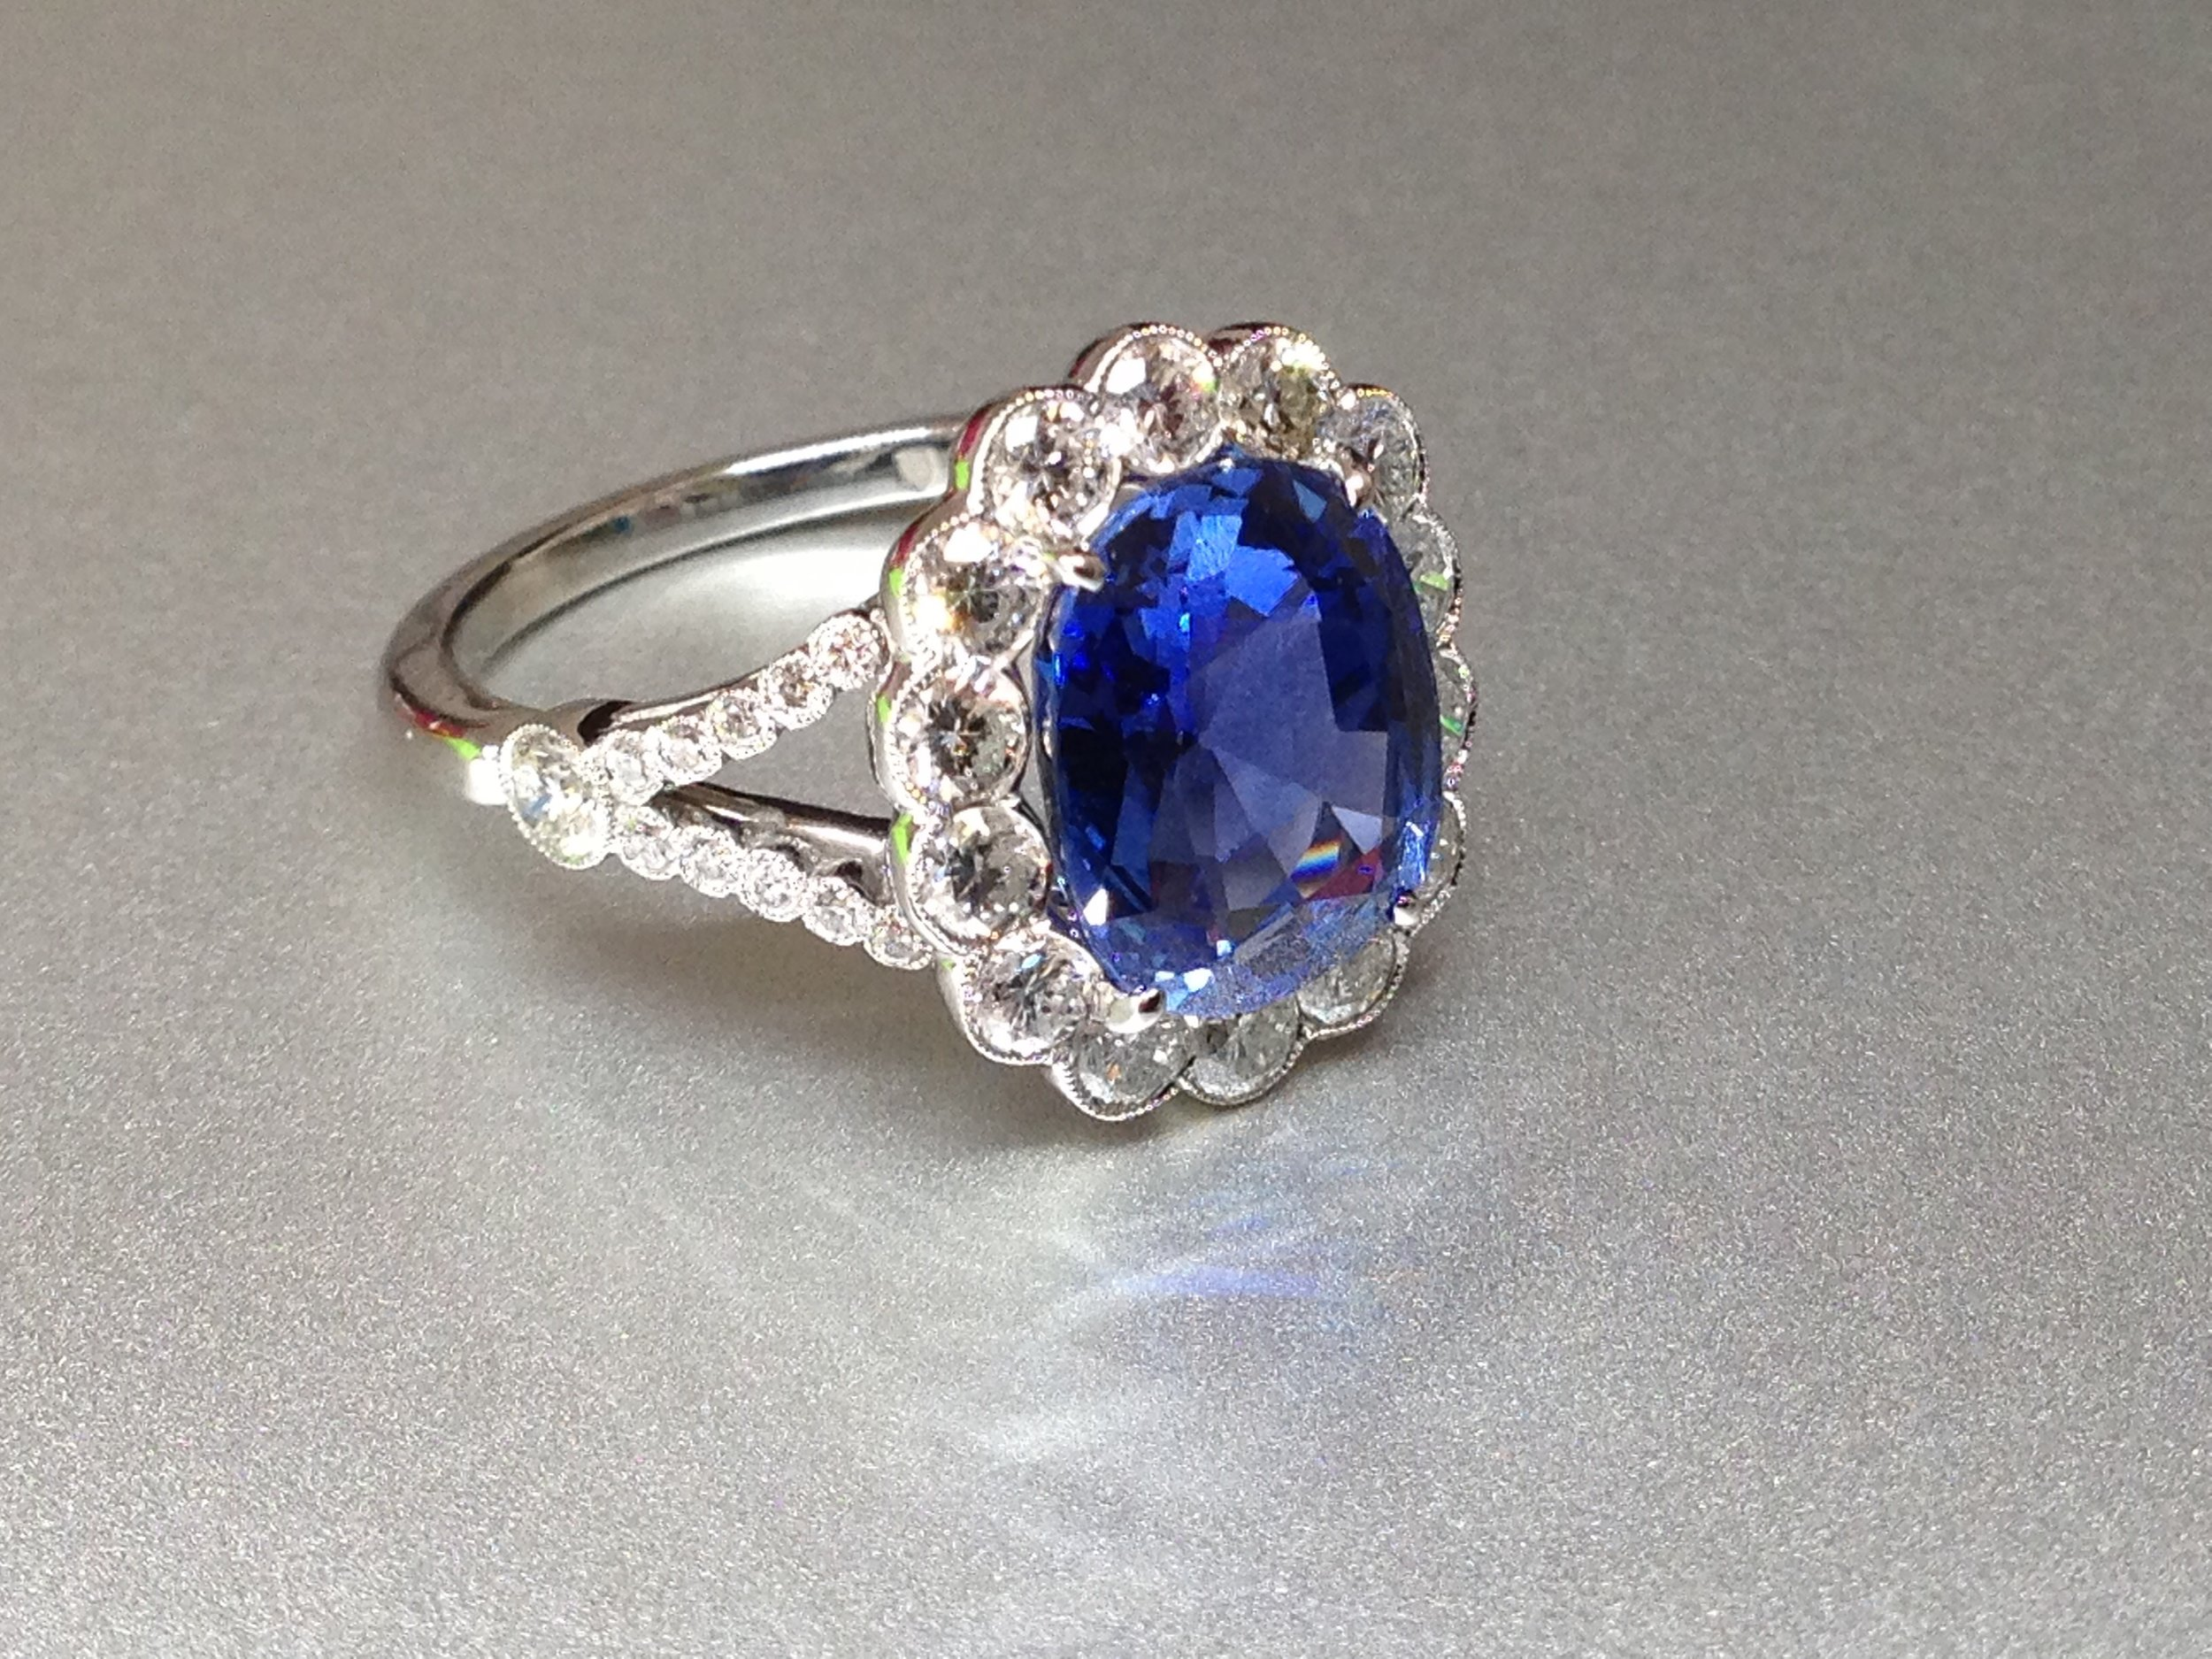 Copy of Platinum mounted sapphire and diamond 1920s style cluster with split shoulders. Made in Chichester, England.